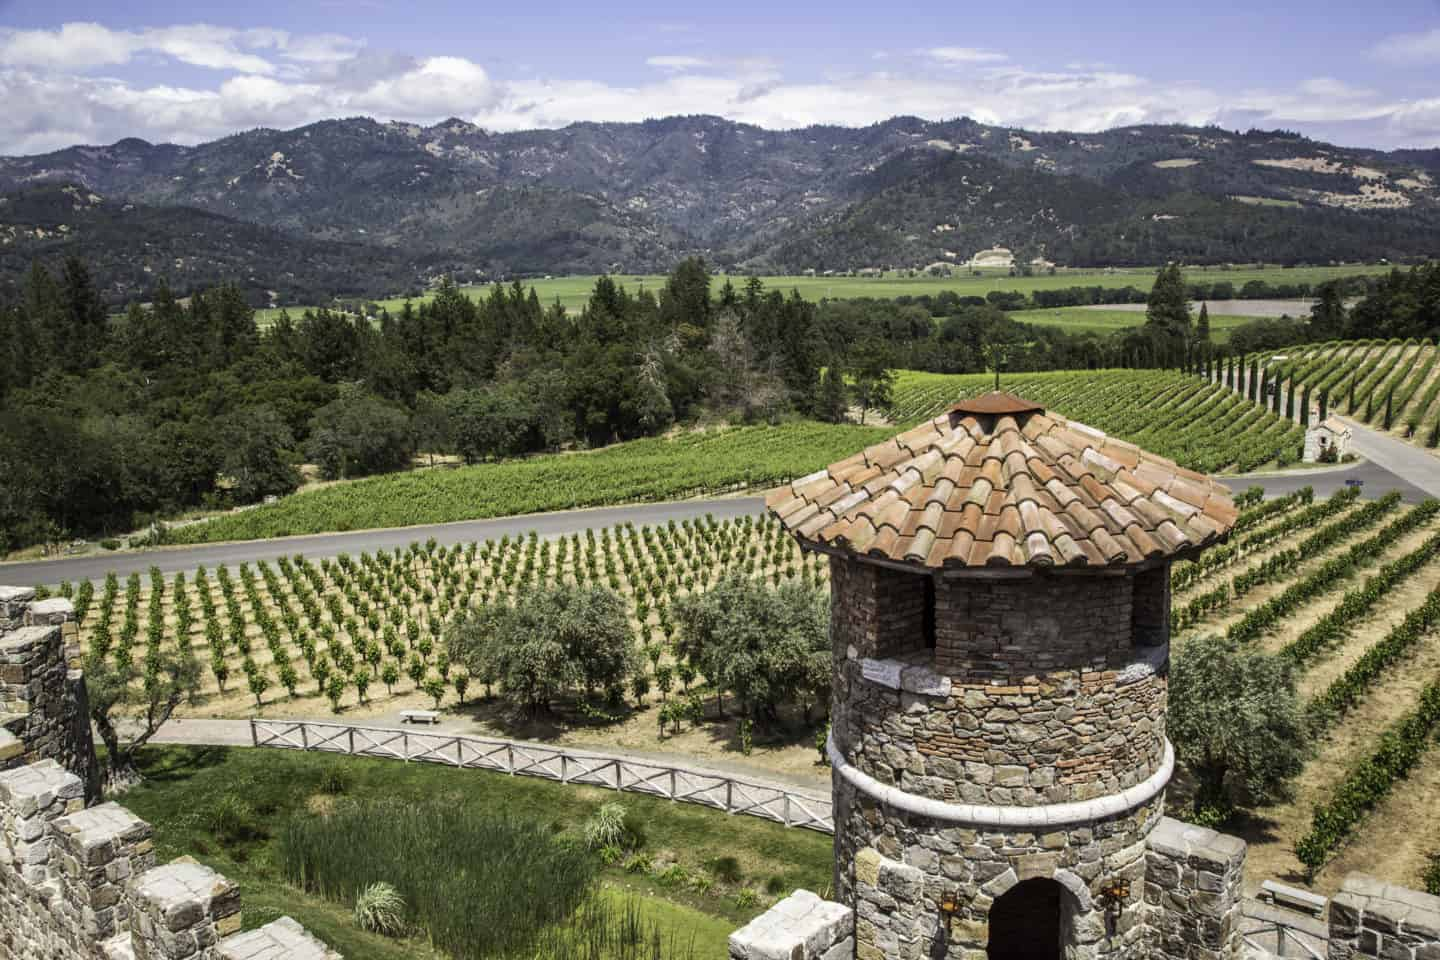 How Many Wineries Are There In Napa Valley